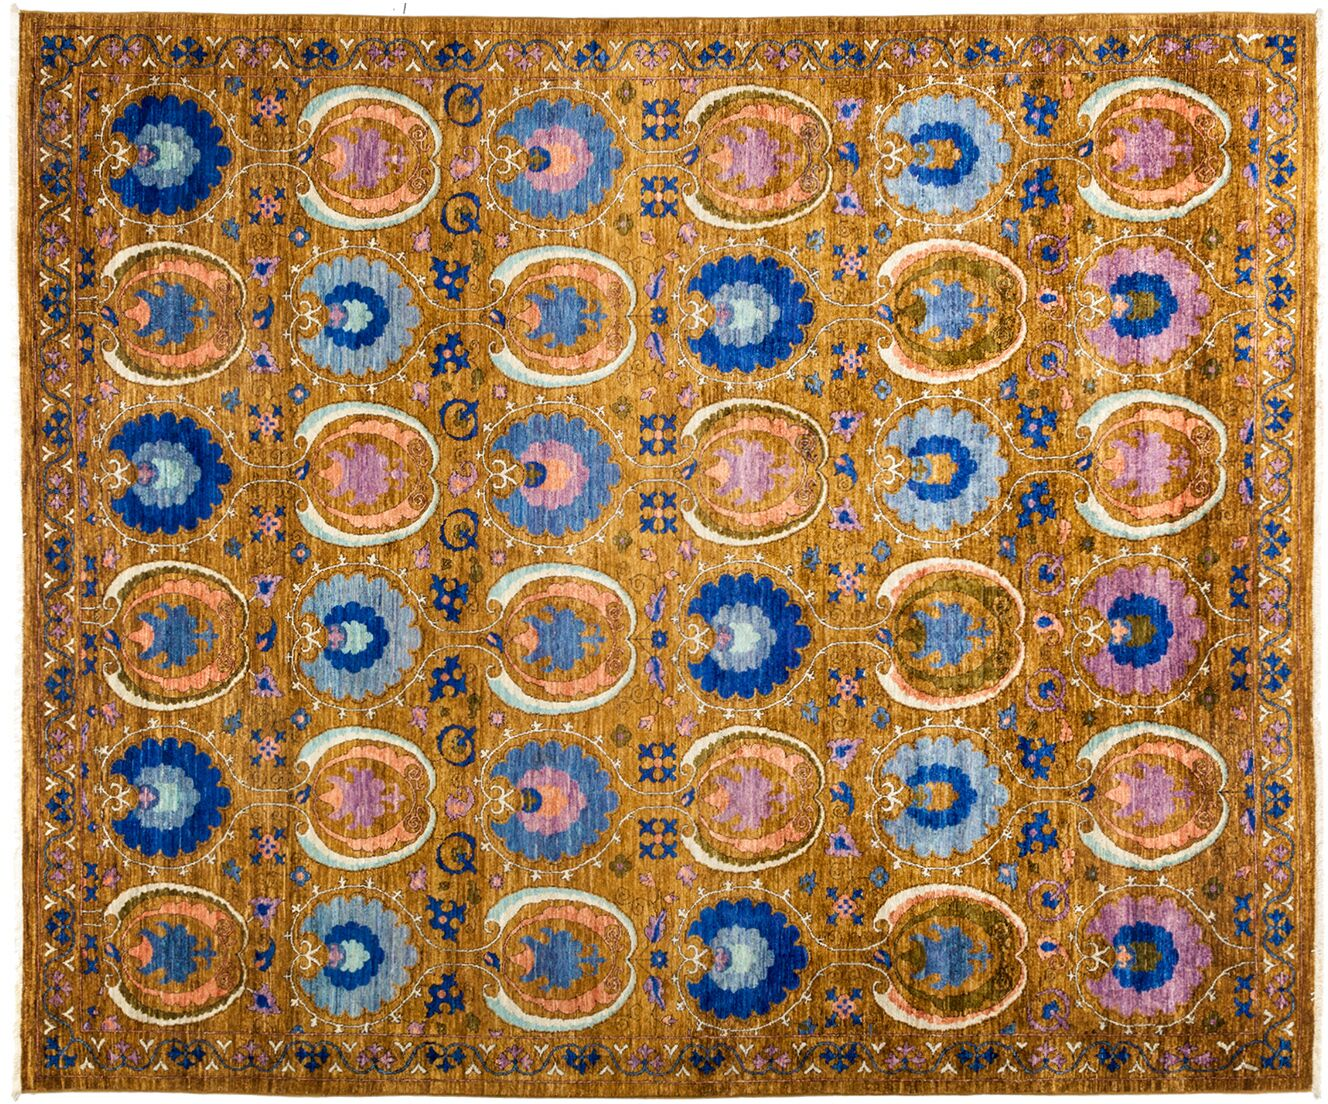 One-of-a-Kind Suzani Hand-Knotted Multicolor Area Rug Rug Size: 8'2